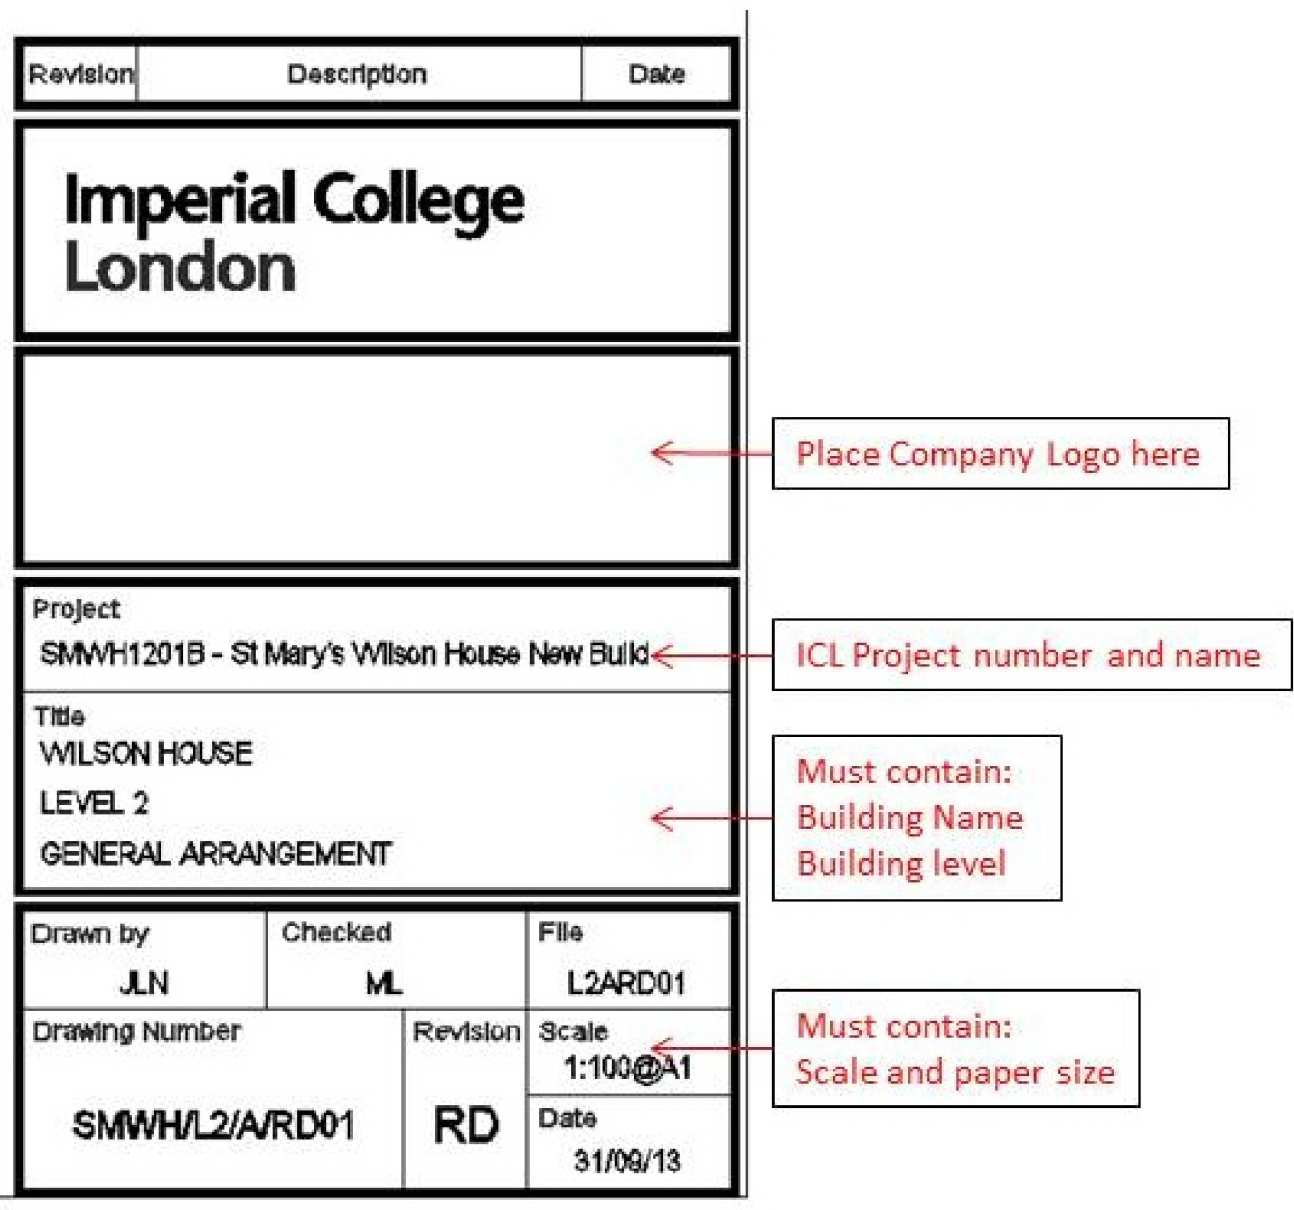 Drawn number block London Block Title College of